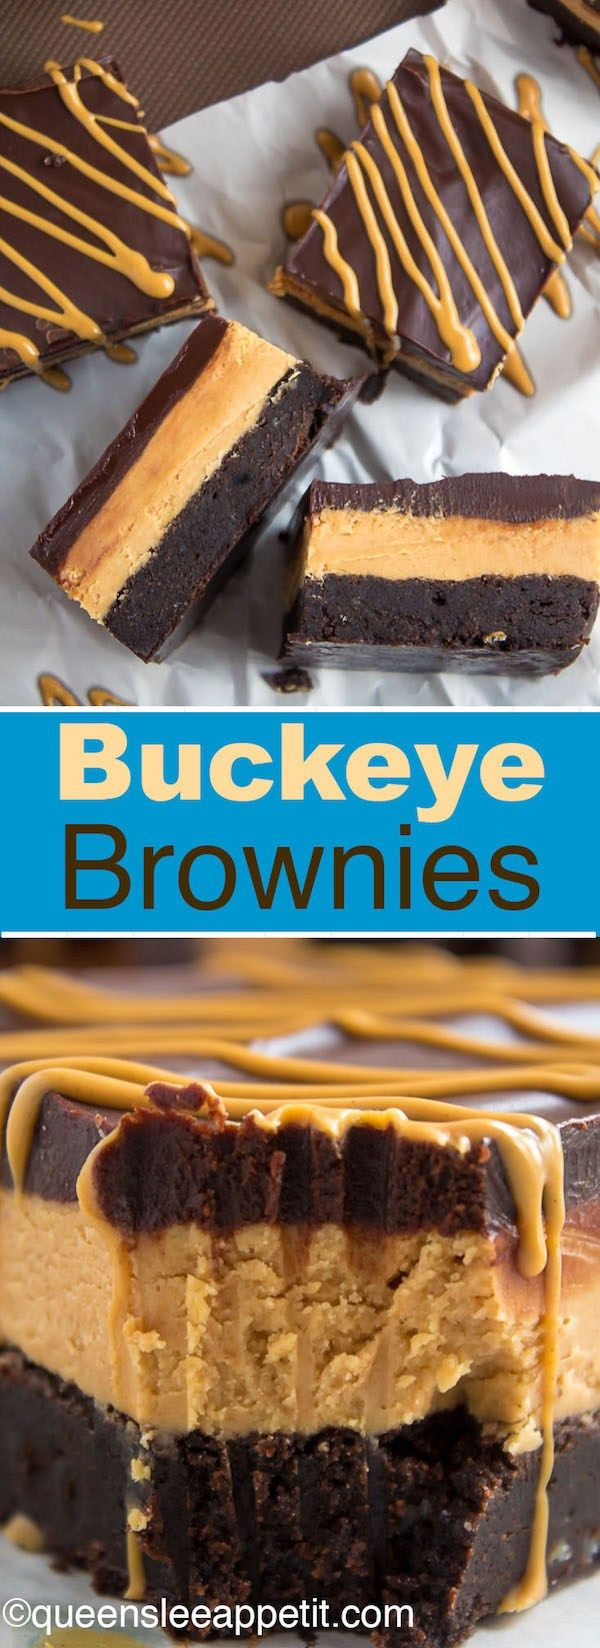 Buckeye Brownies — a decadent fudge brownie, with a smooth and thick peanut butter filling, topped with a rich chocolate ganache and drizzled with melted peanut butter!